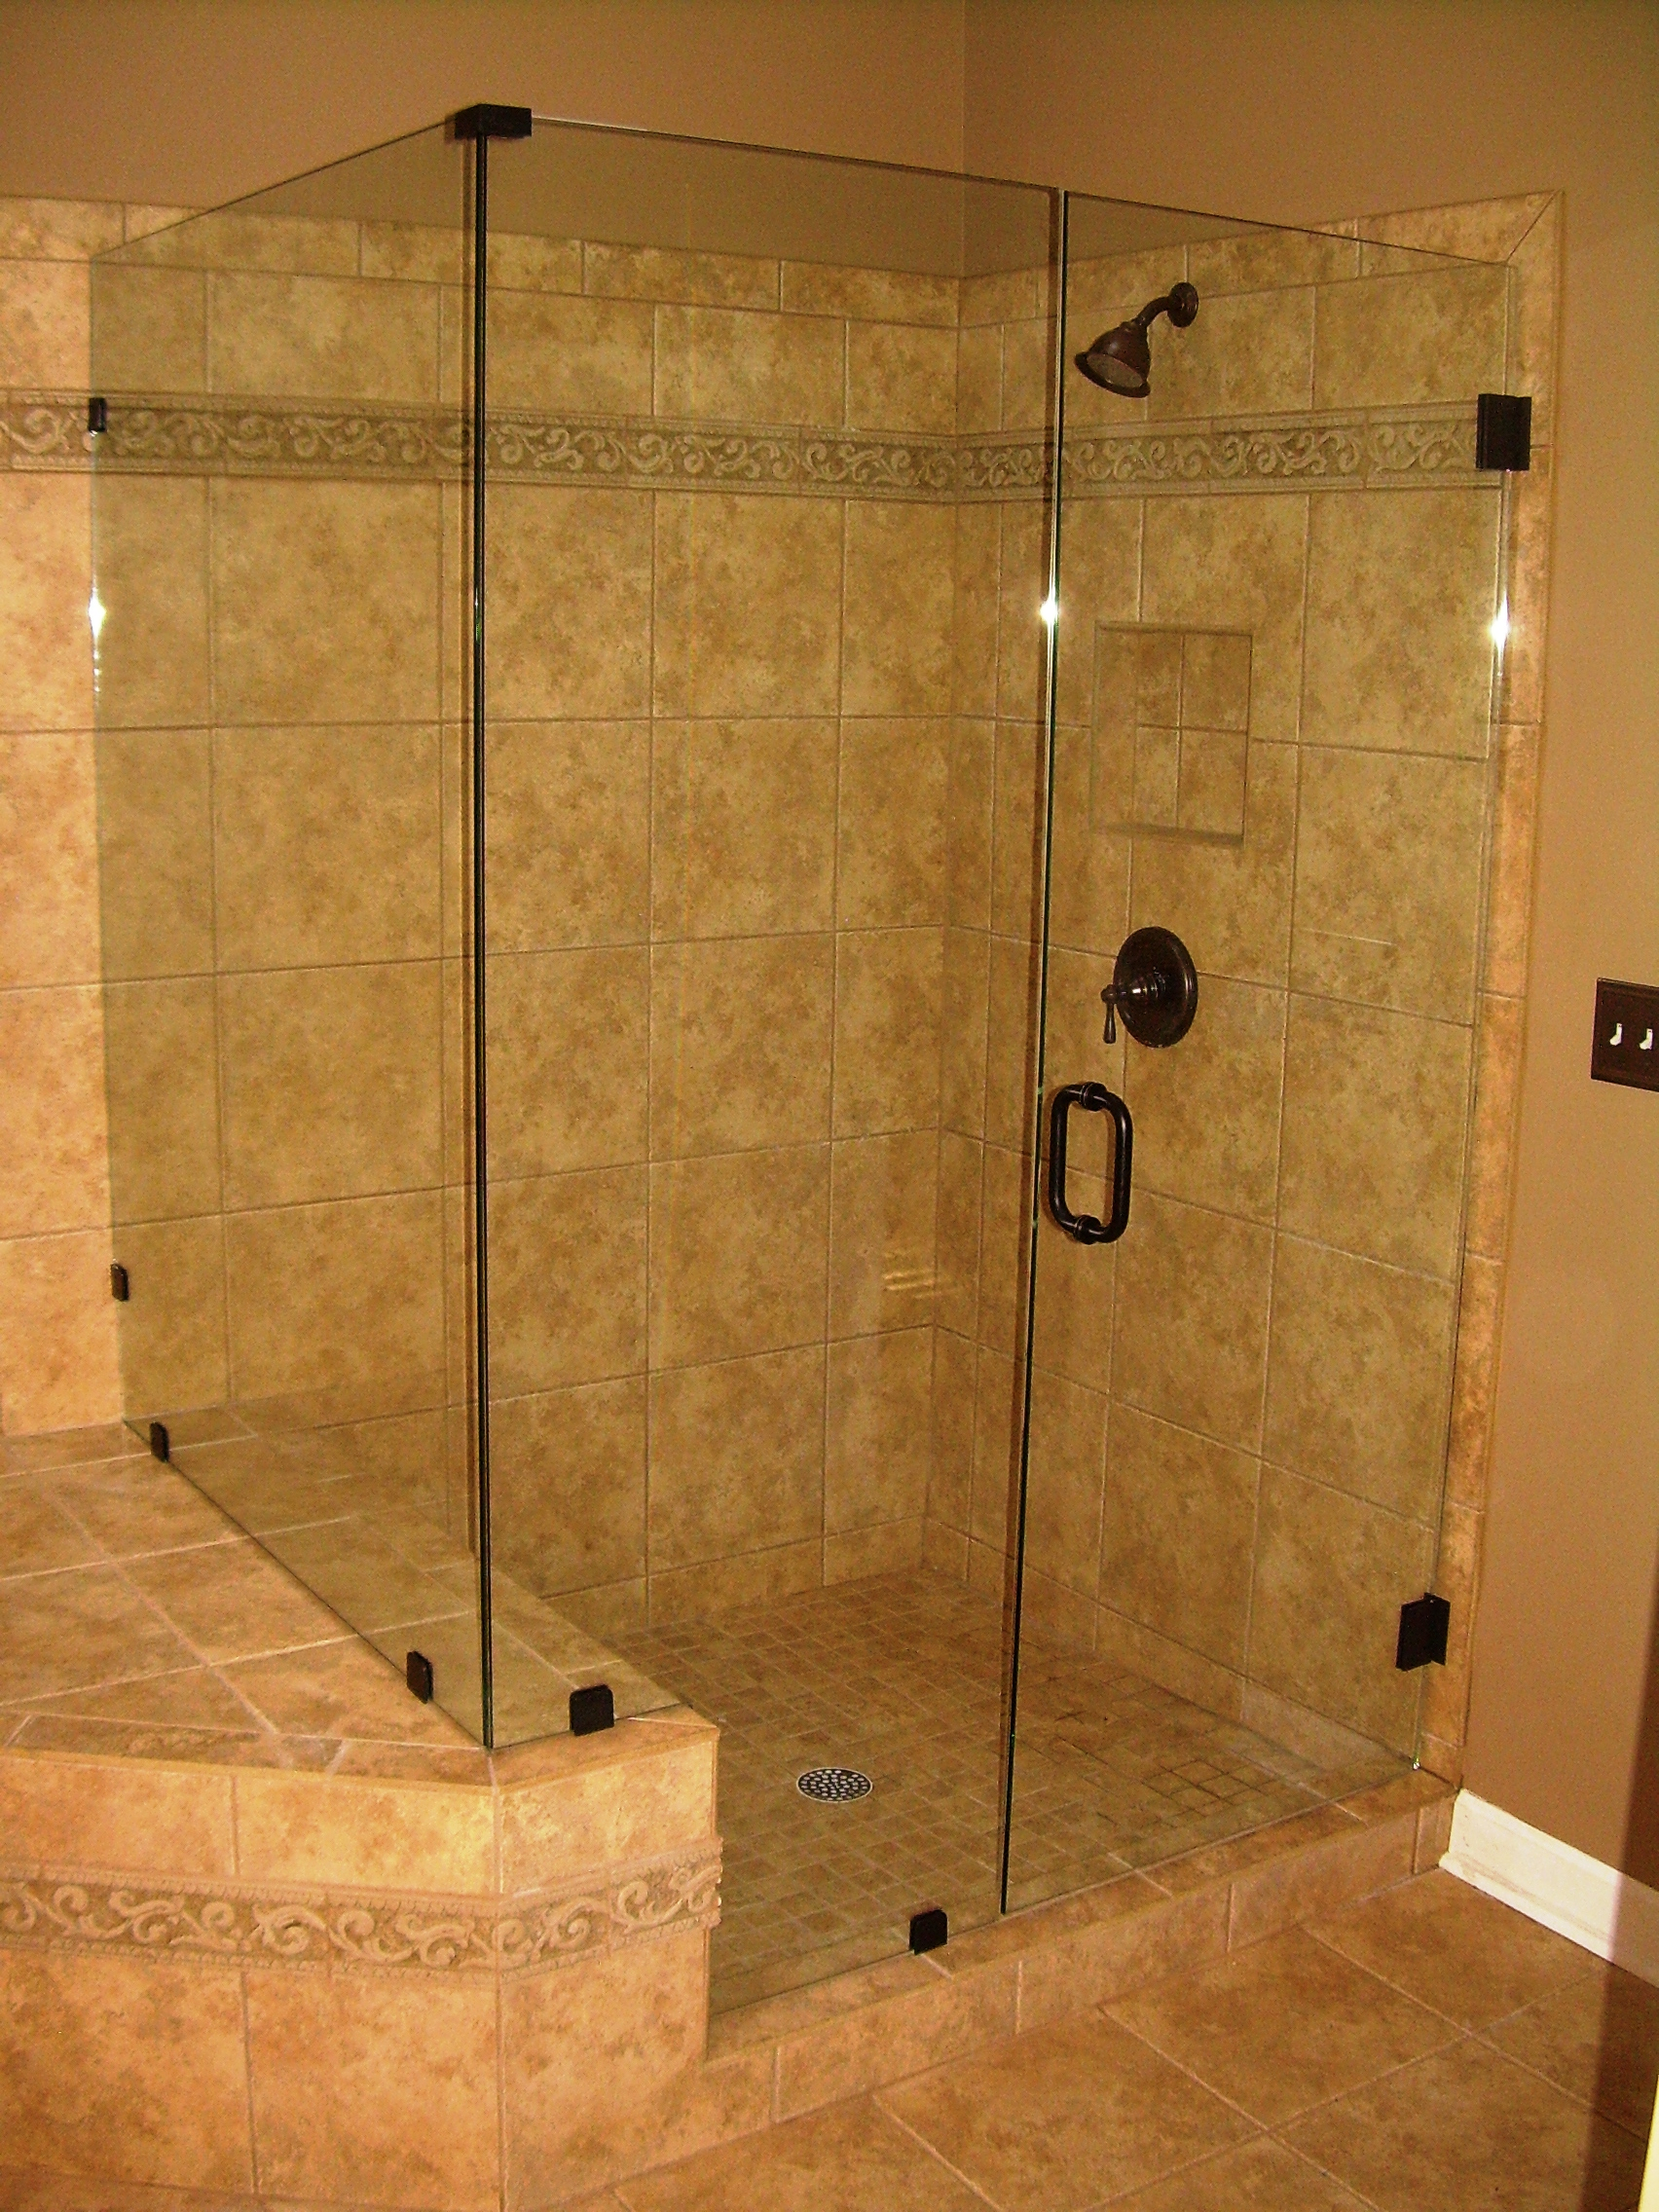 How To Clean Glass Shower Doors Jenna Pope Writes